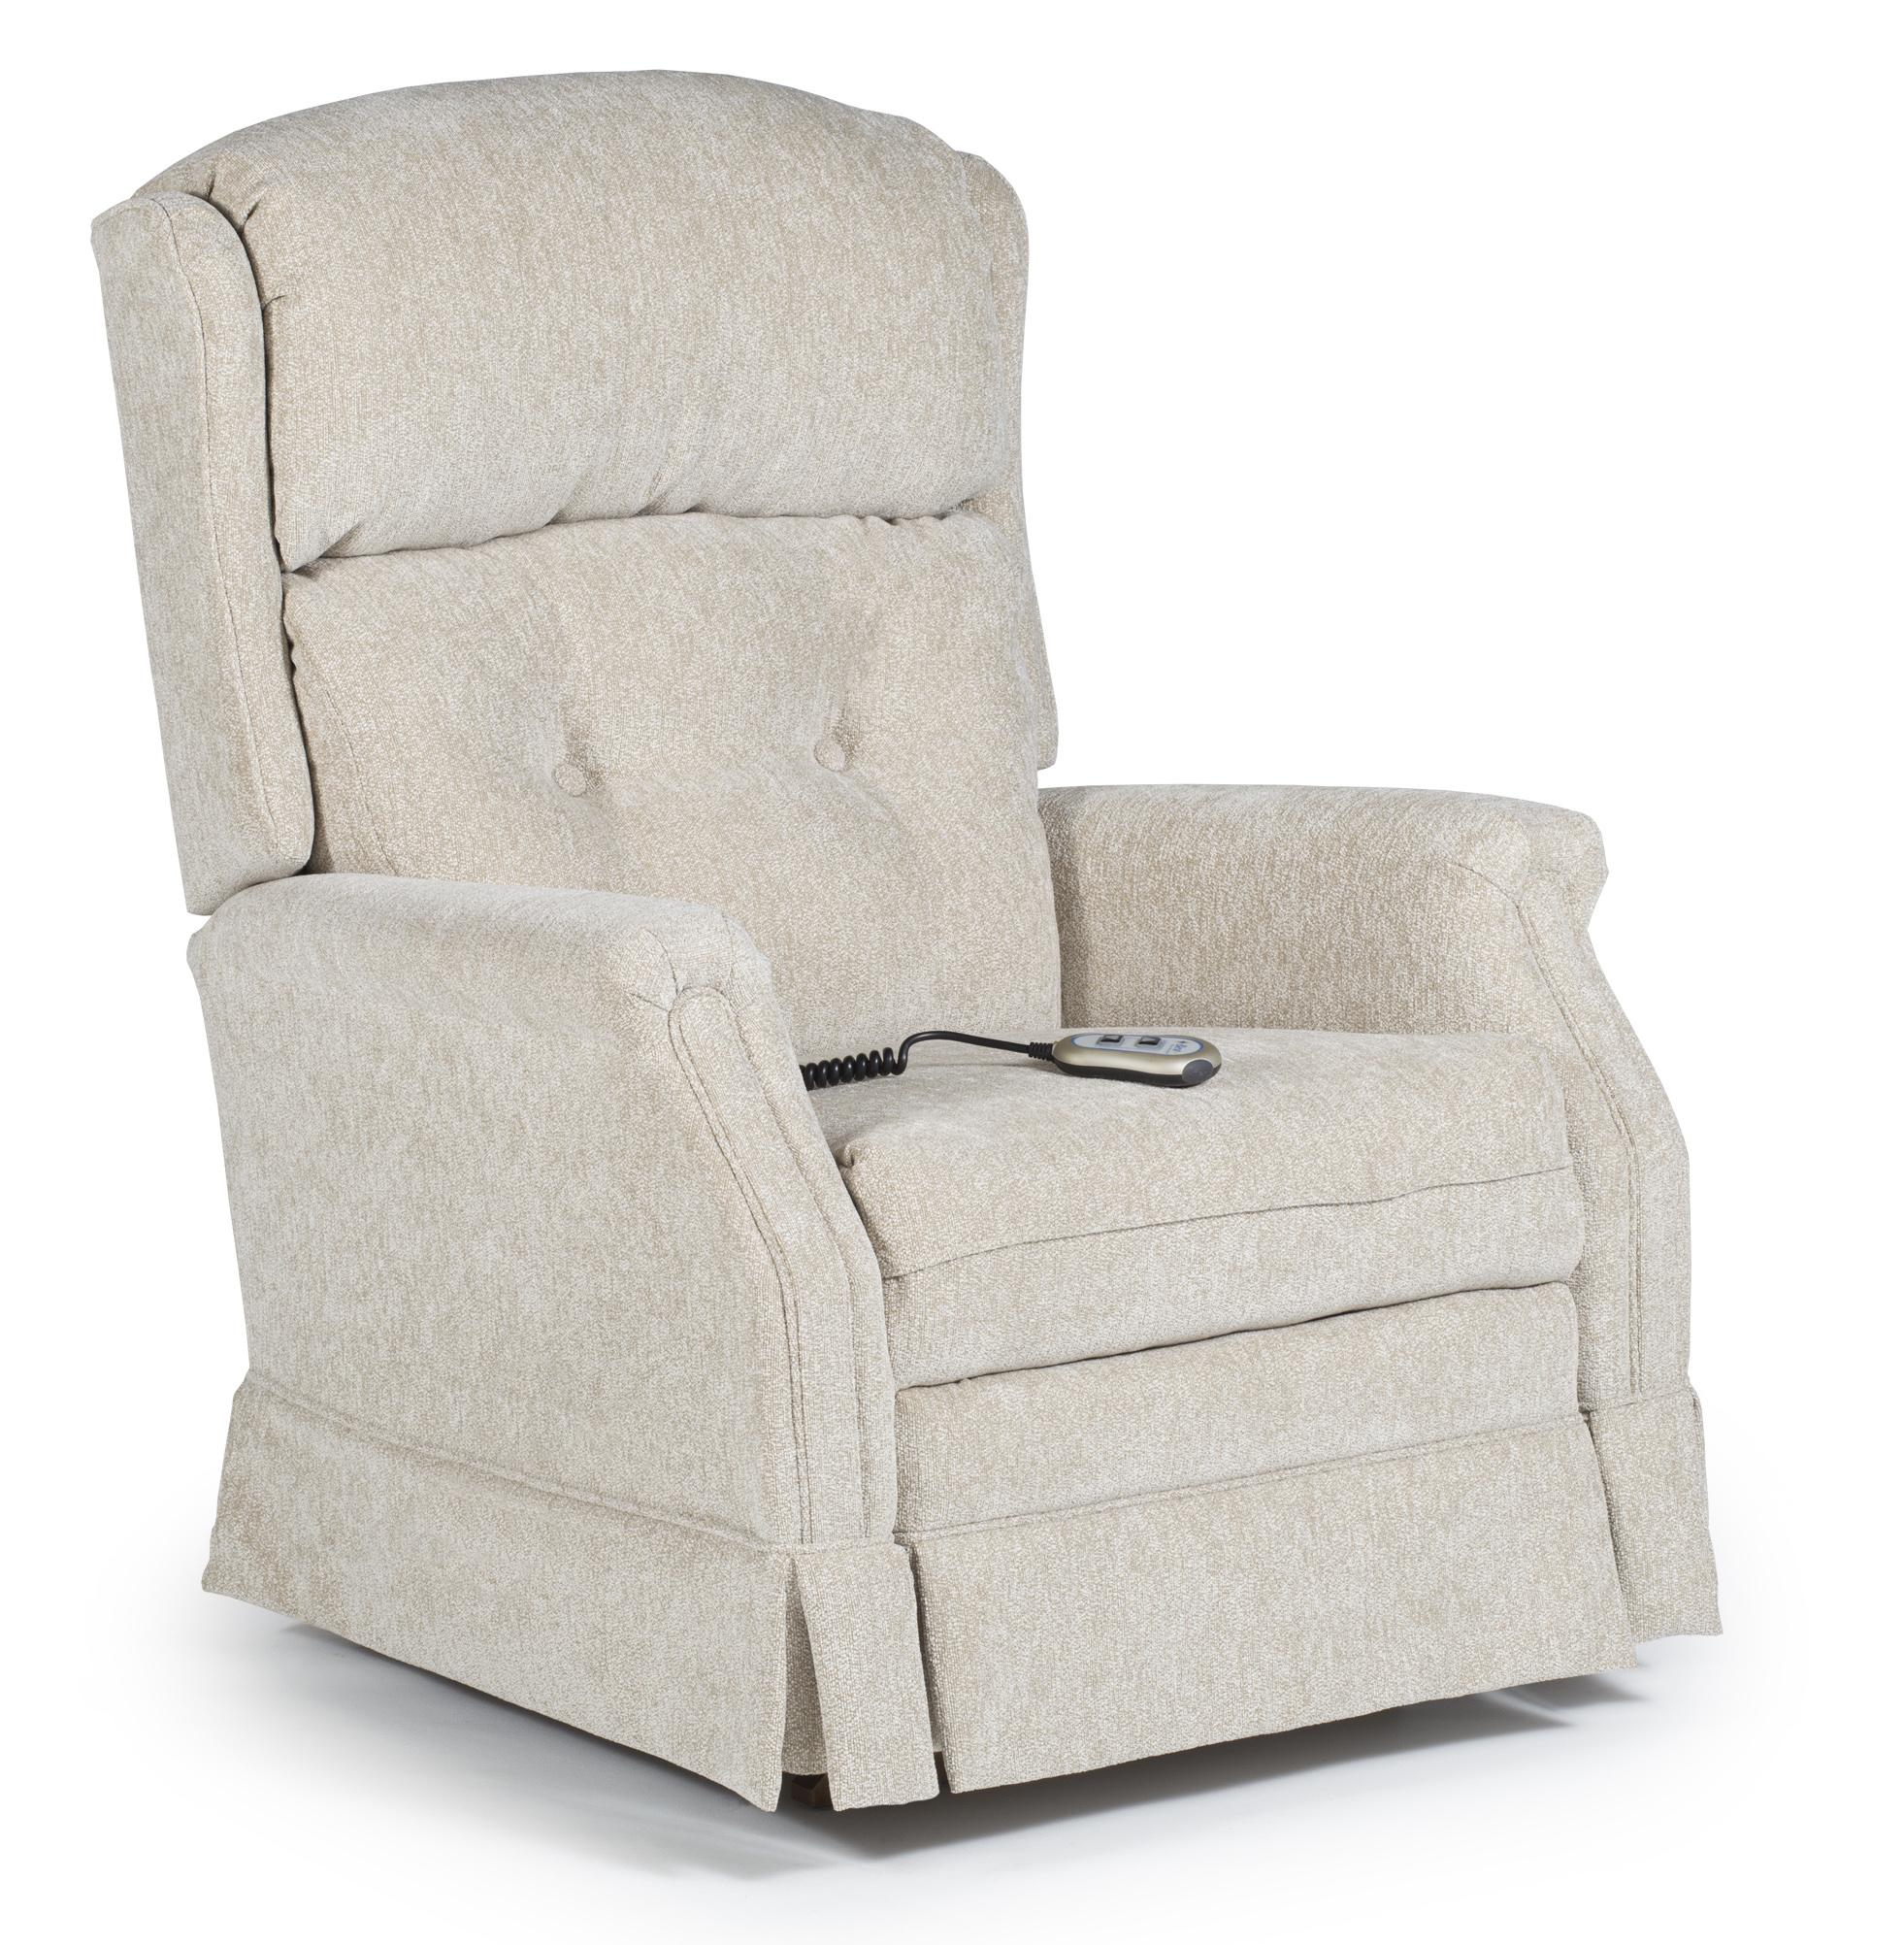 Best Home Furnishings Recliners - Medium Kensett Power Recliner - Item Number: 4NP14